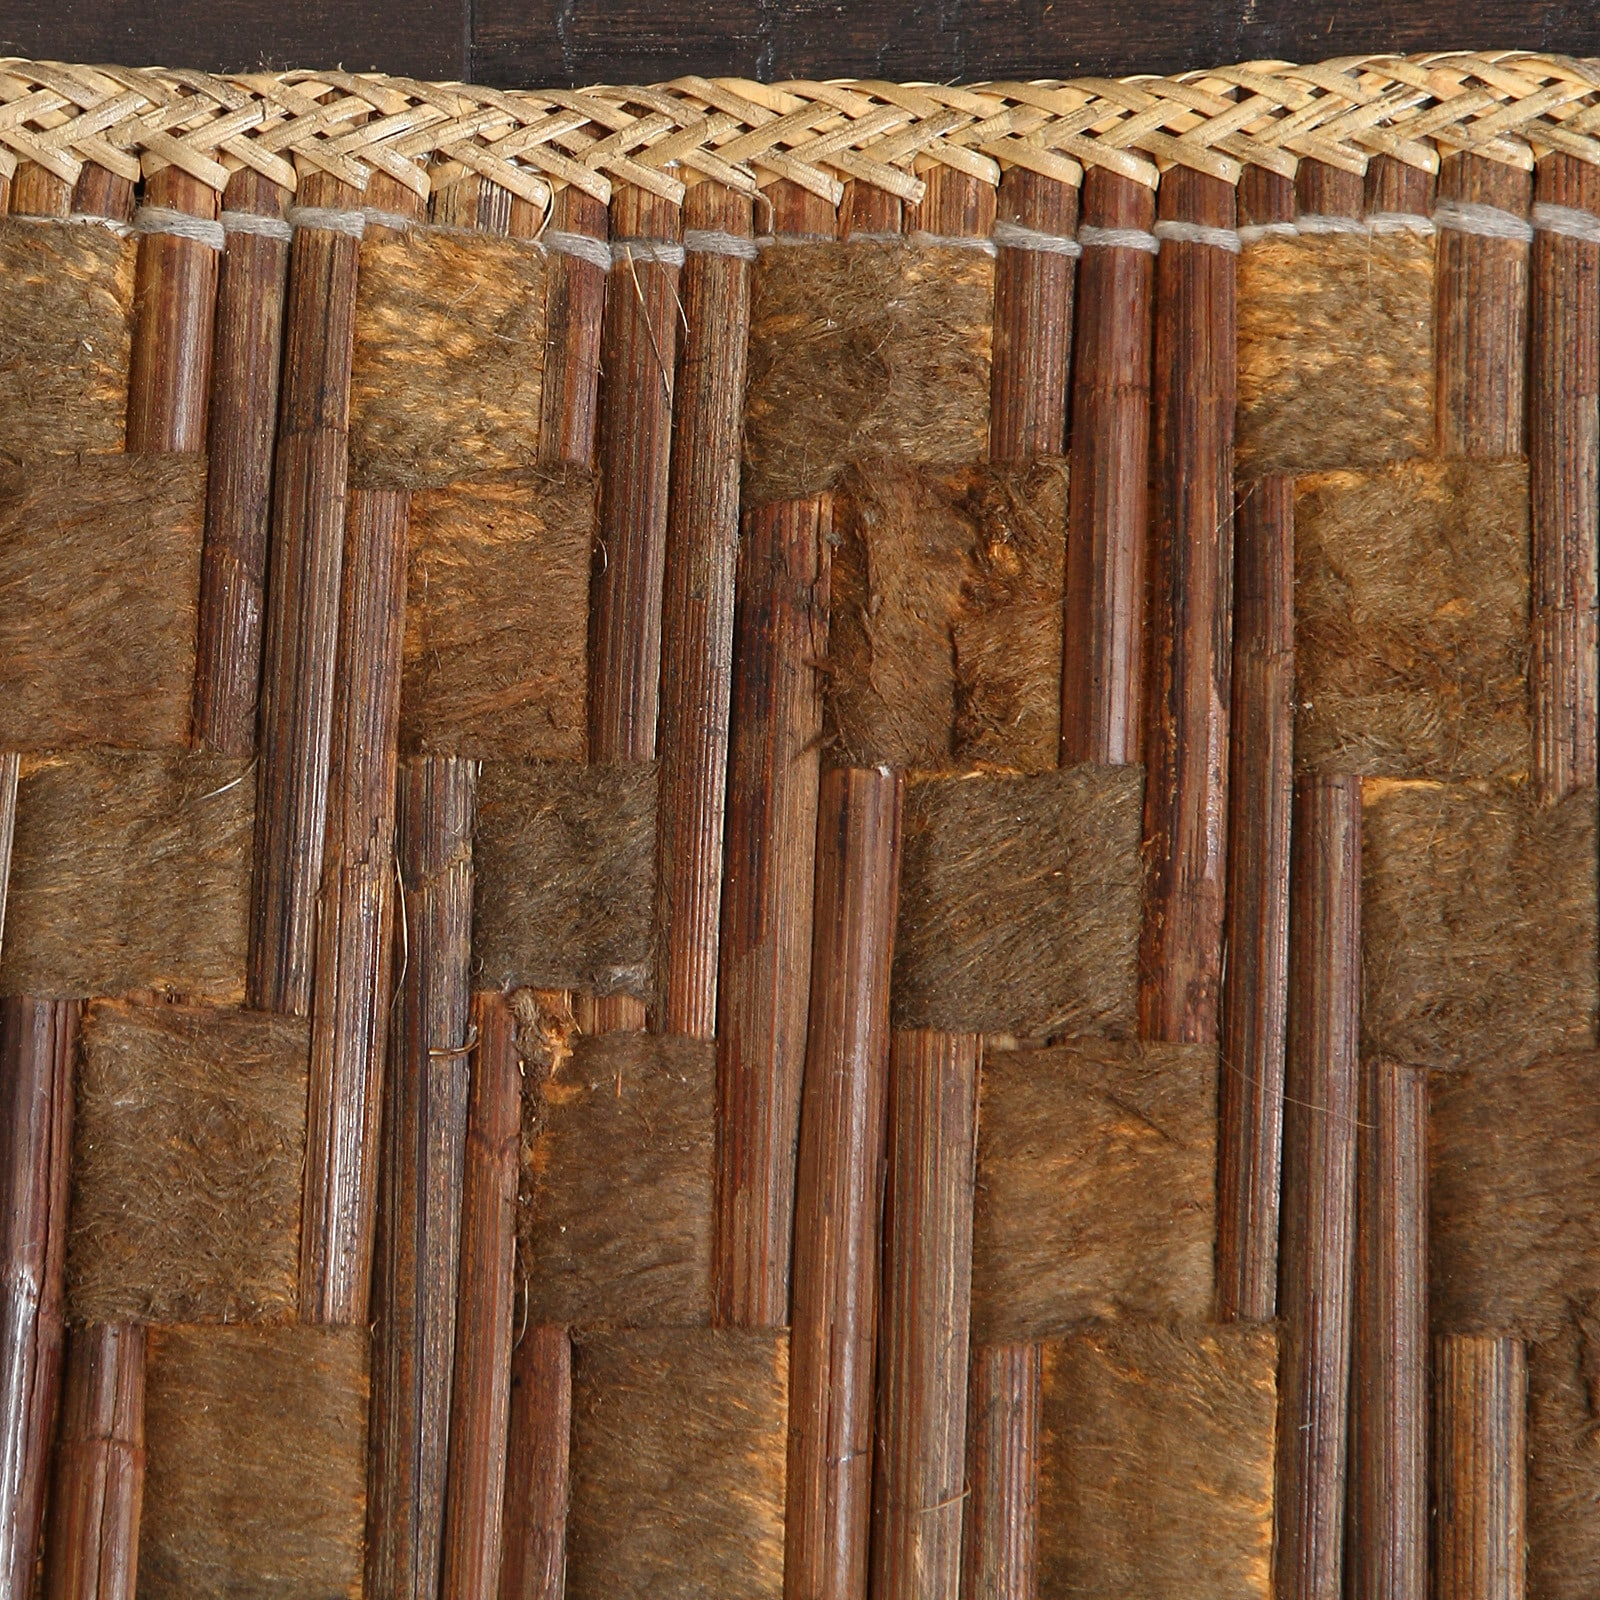 Handmade Woven Natural Bamboo Rattan Area Rug 10 X 14 Indonesia On Free Shipping Today 16989293